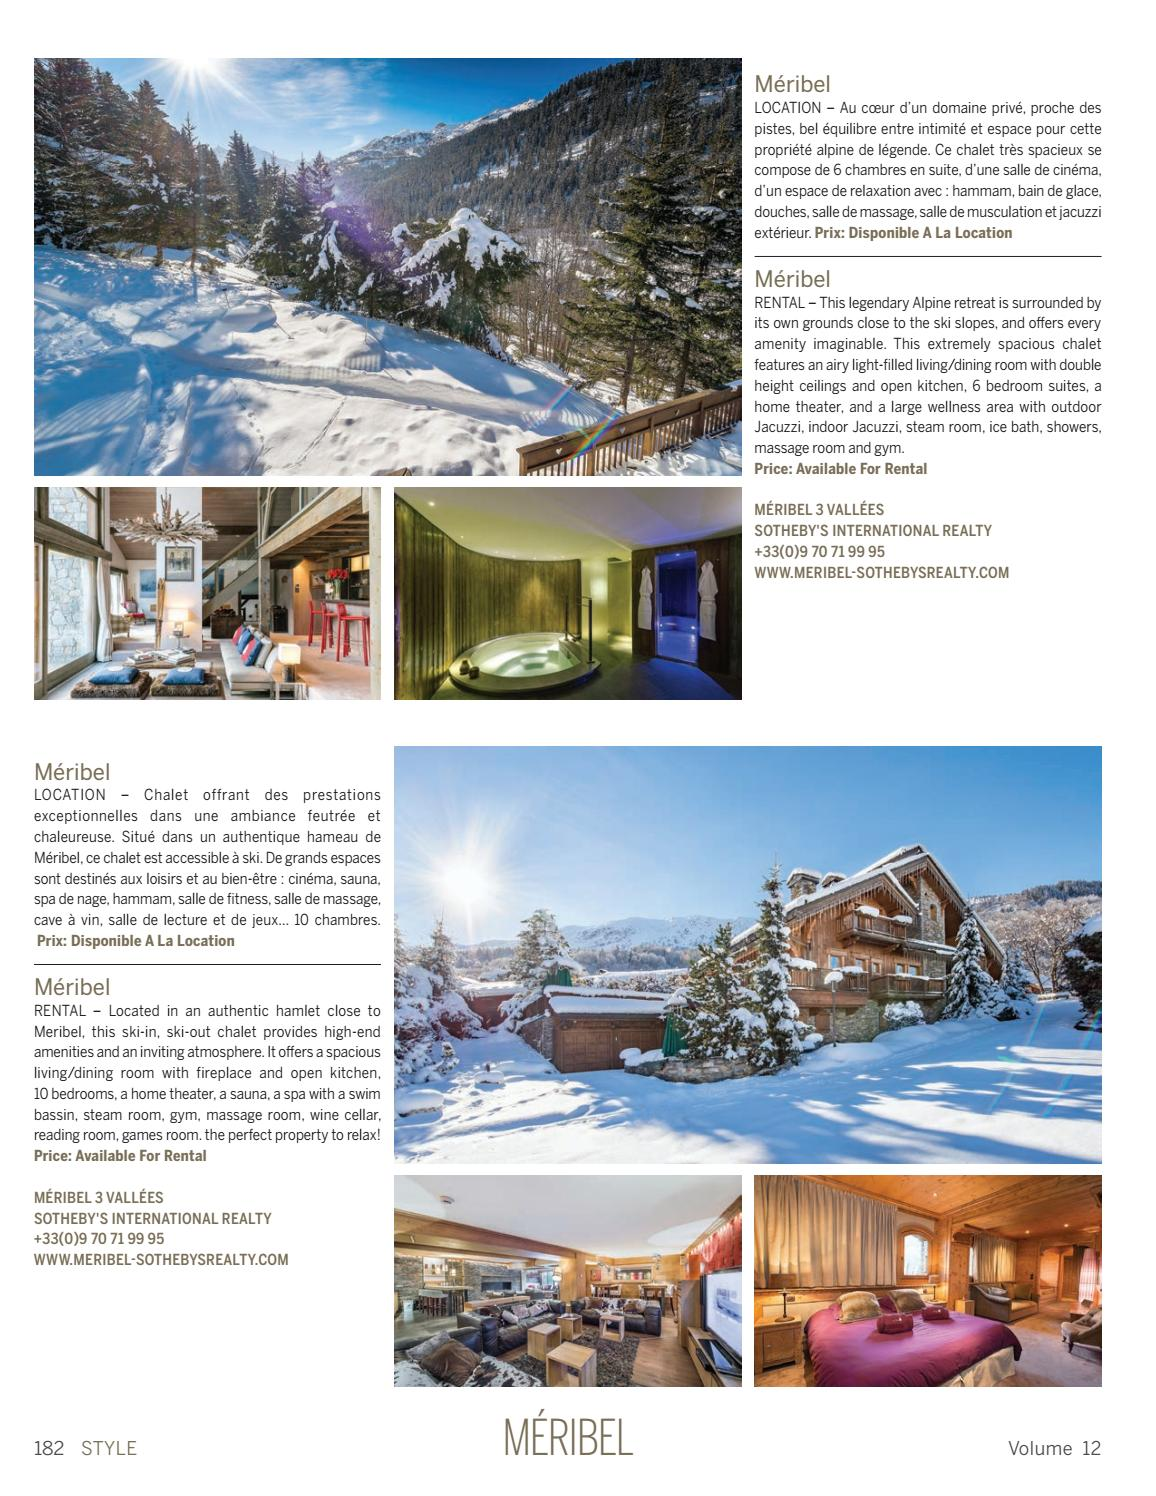 Spa Et Jacuzzi Exterieur Style Volumen 12 By Sotheby S International Realty France